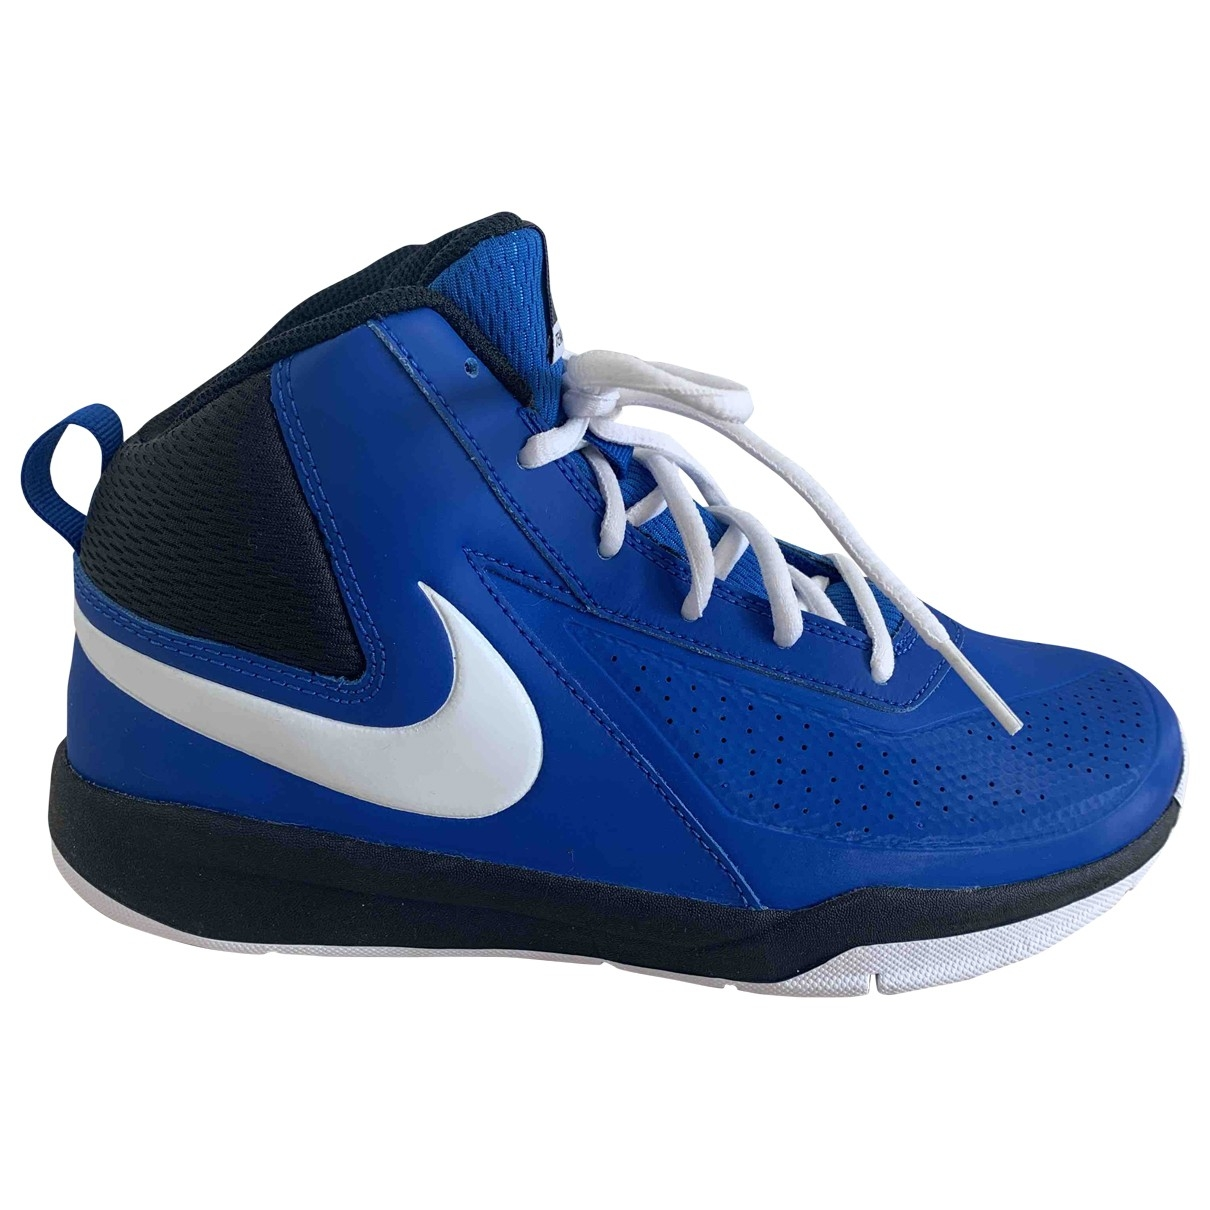 Nike \N Blue Leather Trainers for Men 39 EU